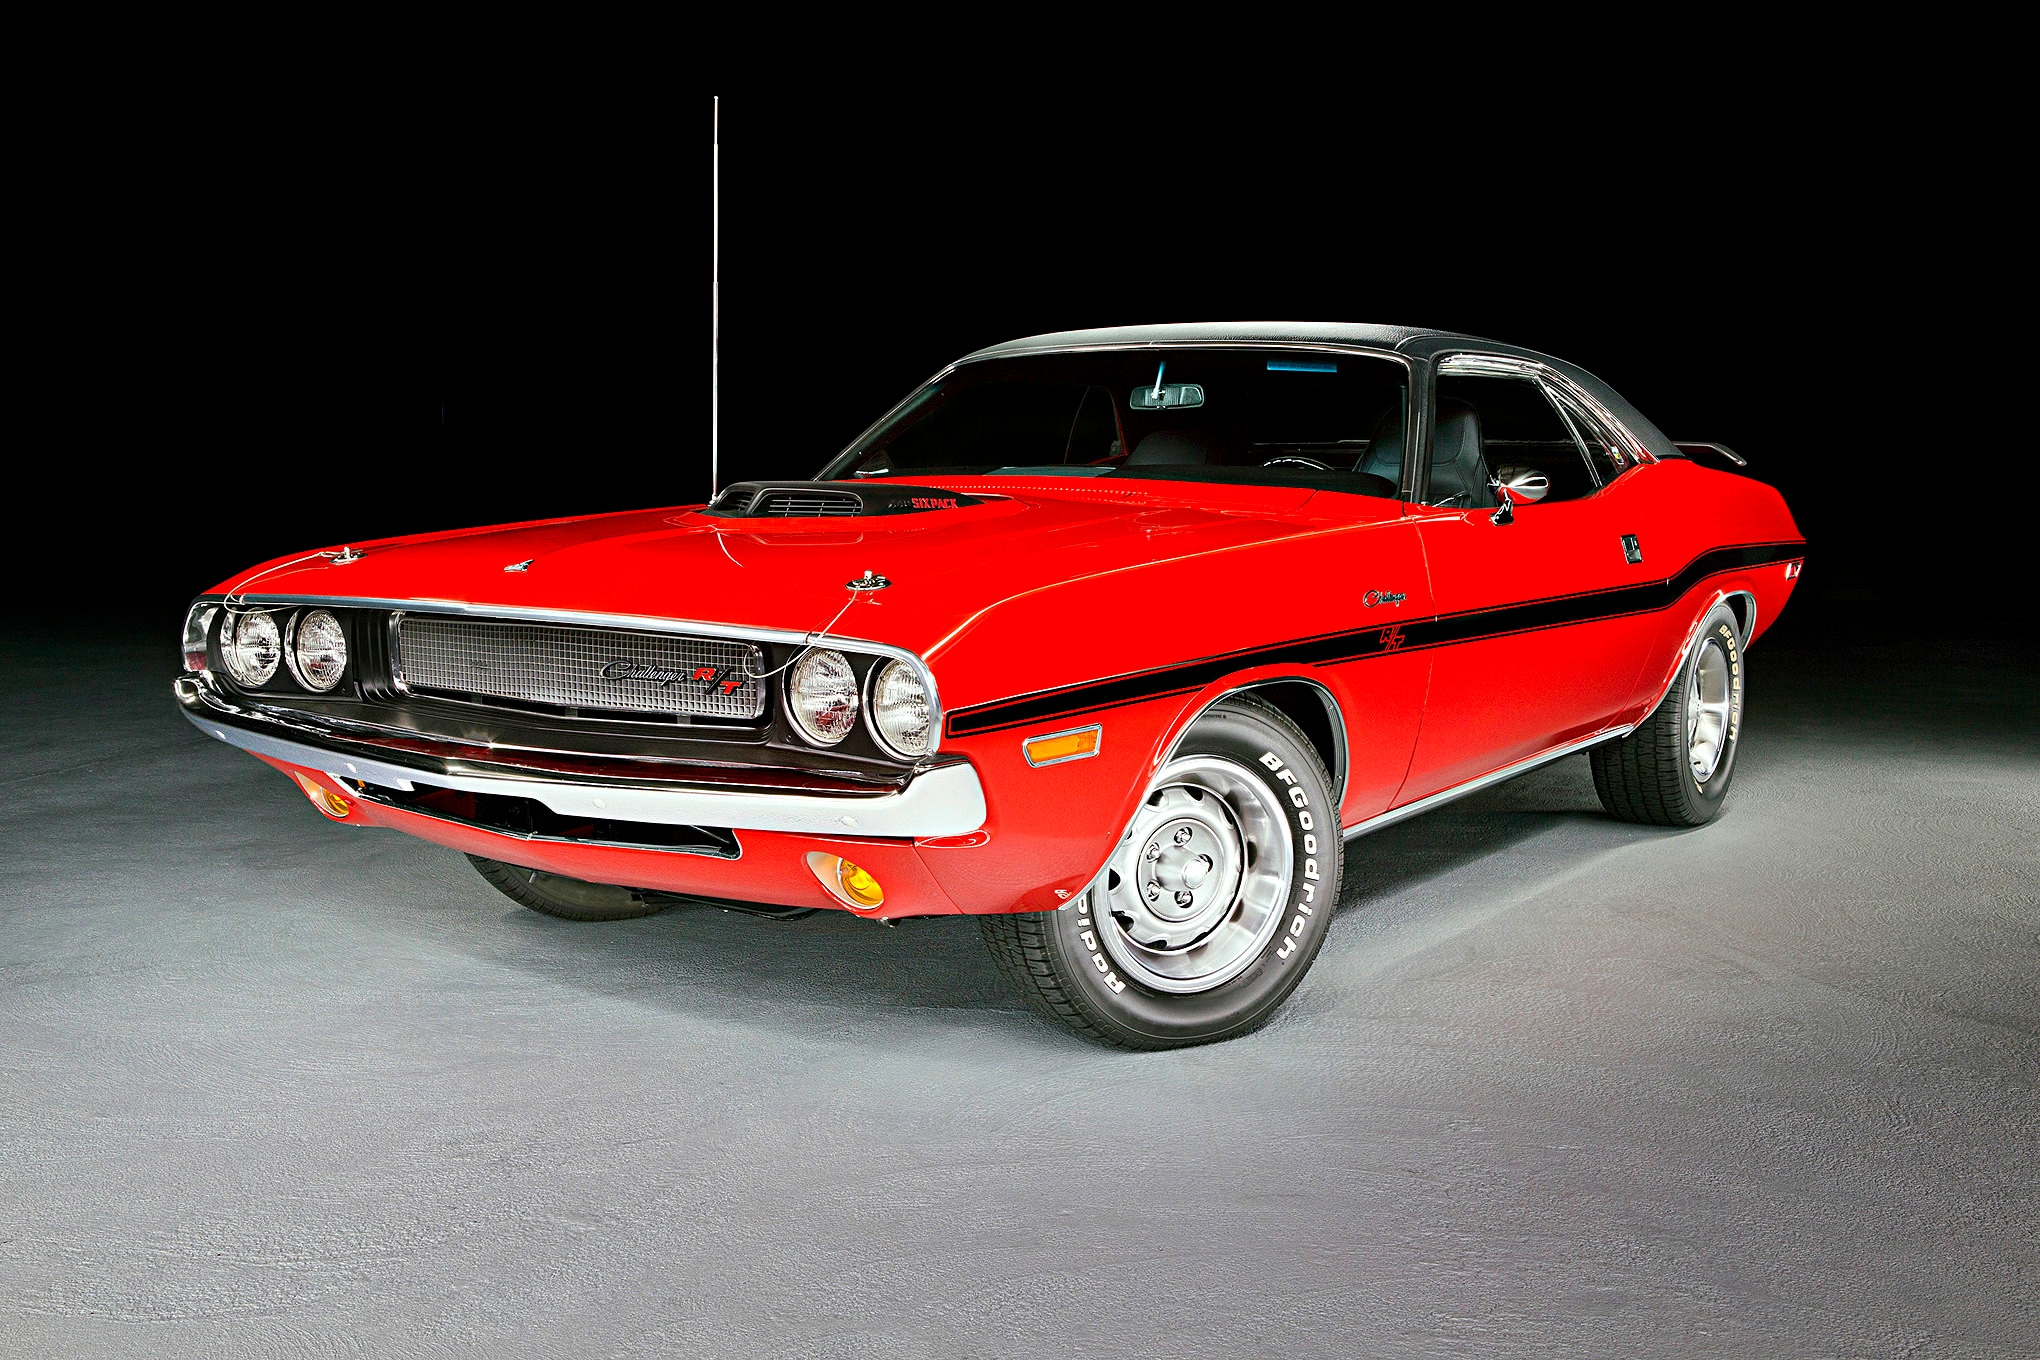 This looks like a fantastically restored 1970 Rally Red Challenger, and it is. This does not look like an 11-second car, but it is. John Kennedy has one of the cleanest, nicest, highest caliber, and fastest stock-looking Challengers in the country.